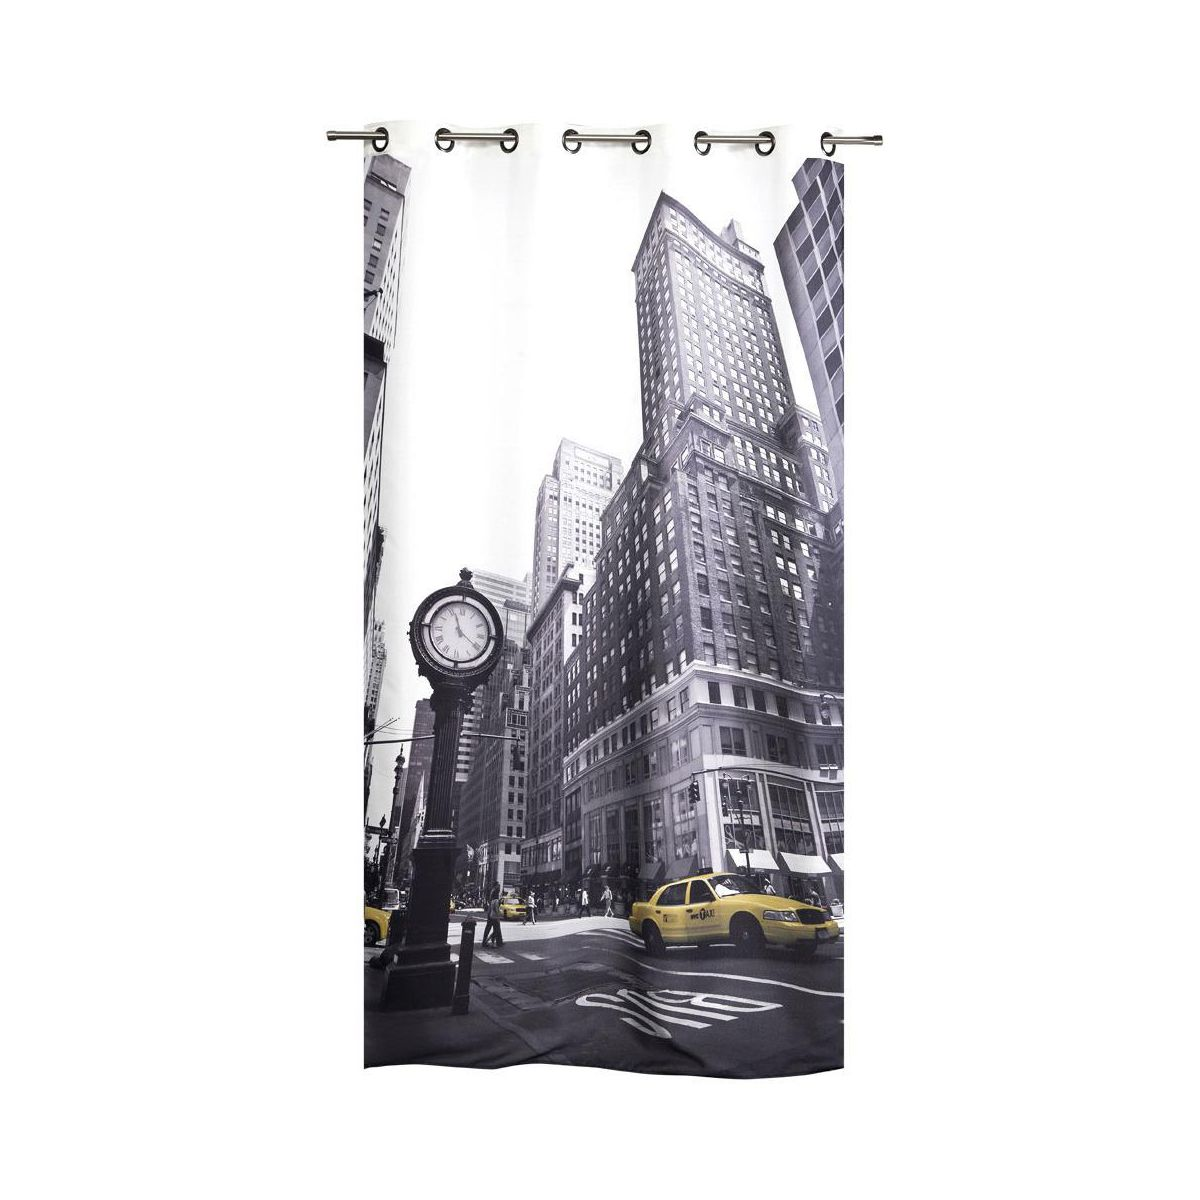 Design rideau new york leroy merlin 18 montpellier montpellier rideau - Suspension new york leroy merlin ...